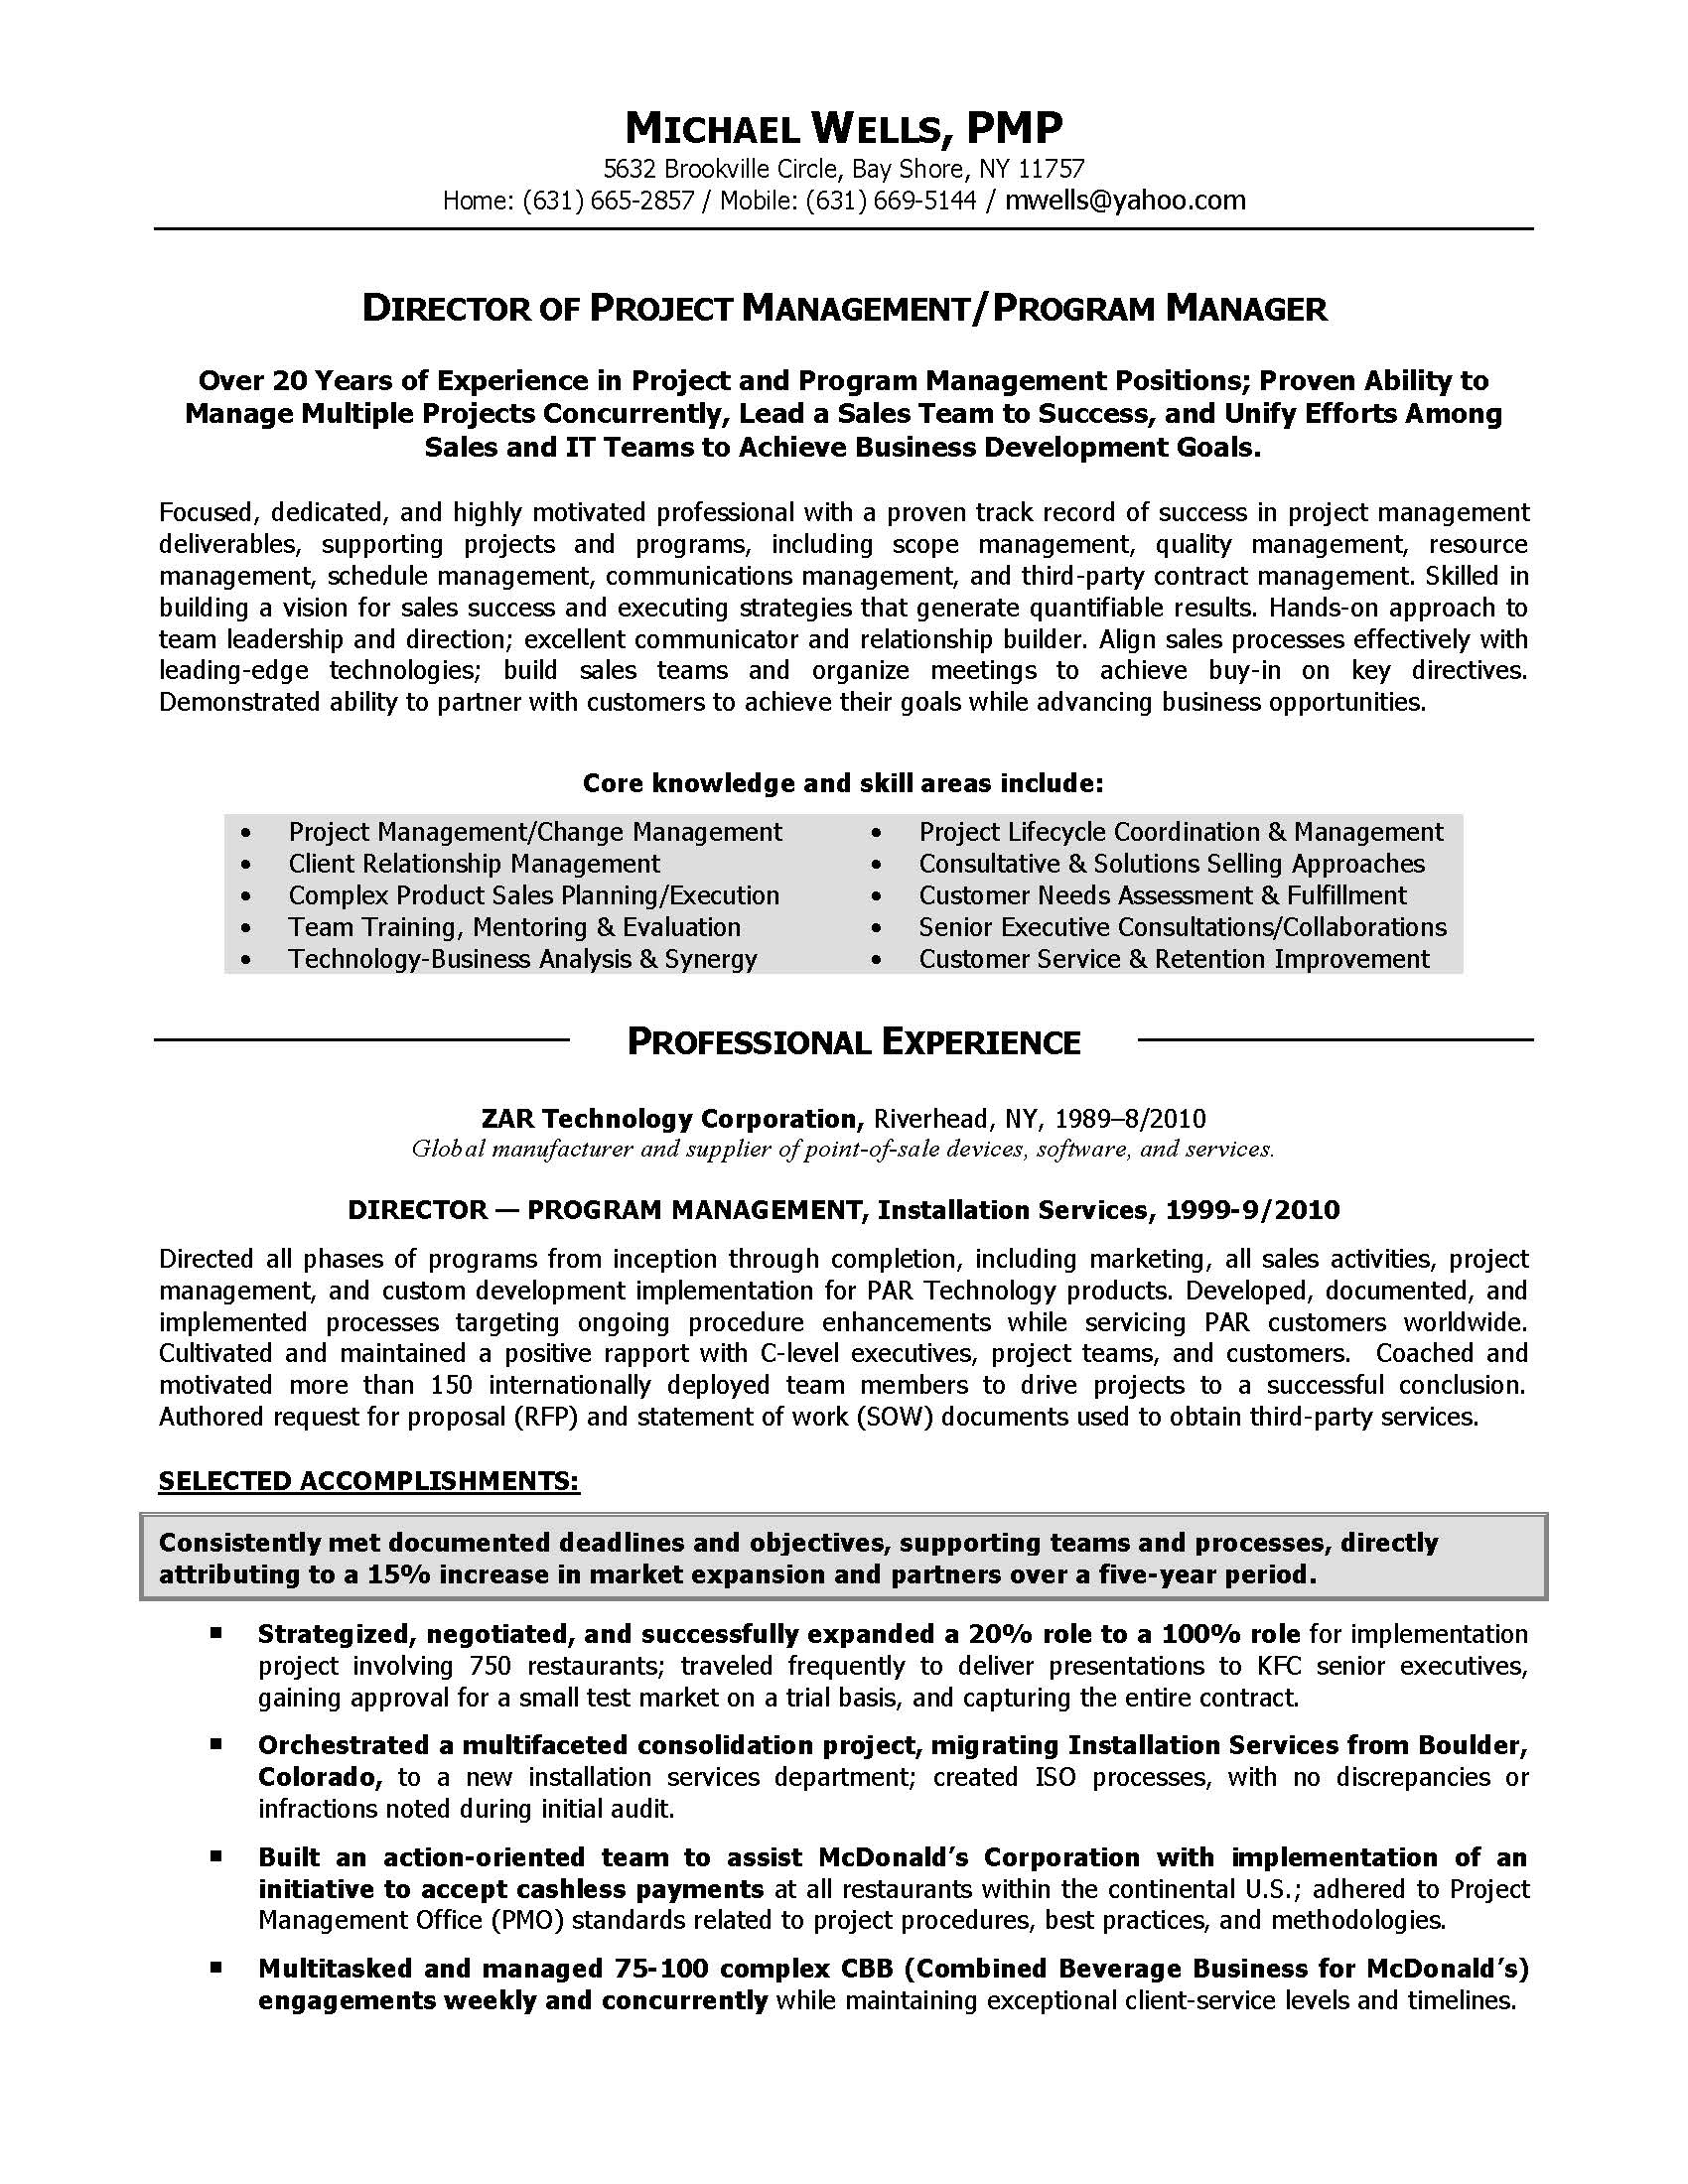 Delightful Project Management Director Resume Sample, Provided By Elite Resume Writing  Services Regard To Program Manager Resumes